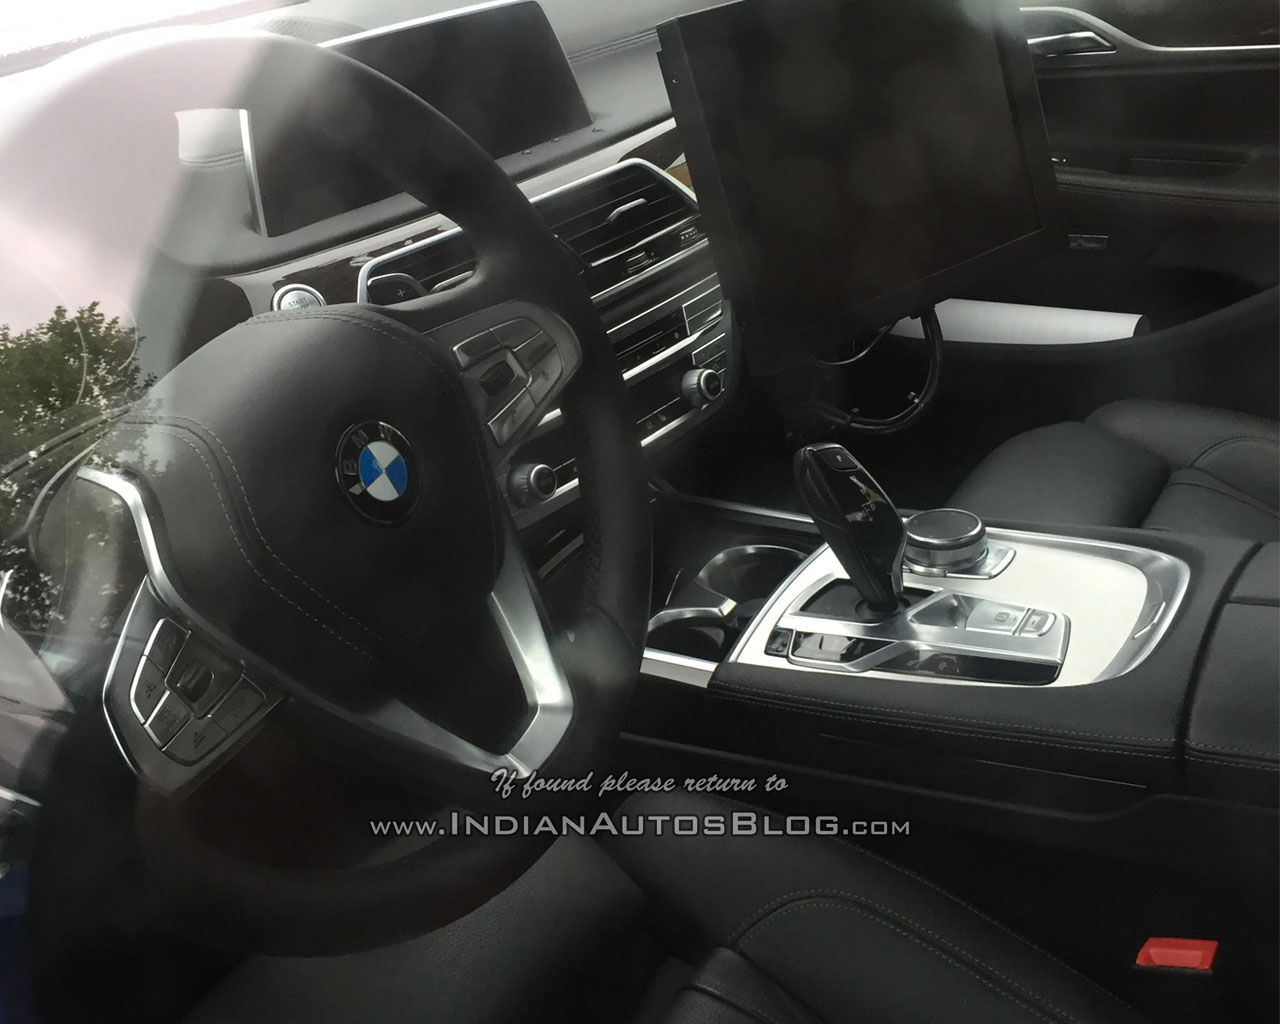 BMW 5 Series Bmw 5 Series Interior All New BMW 5 Series Interior Snapped